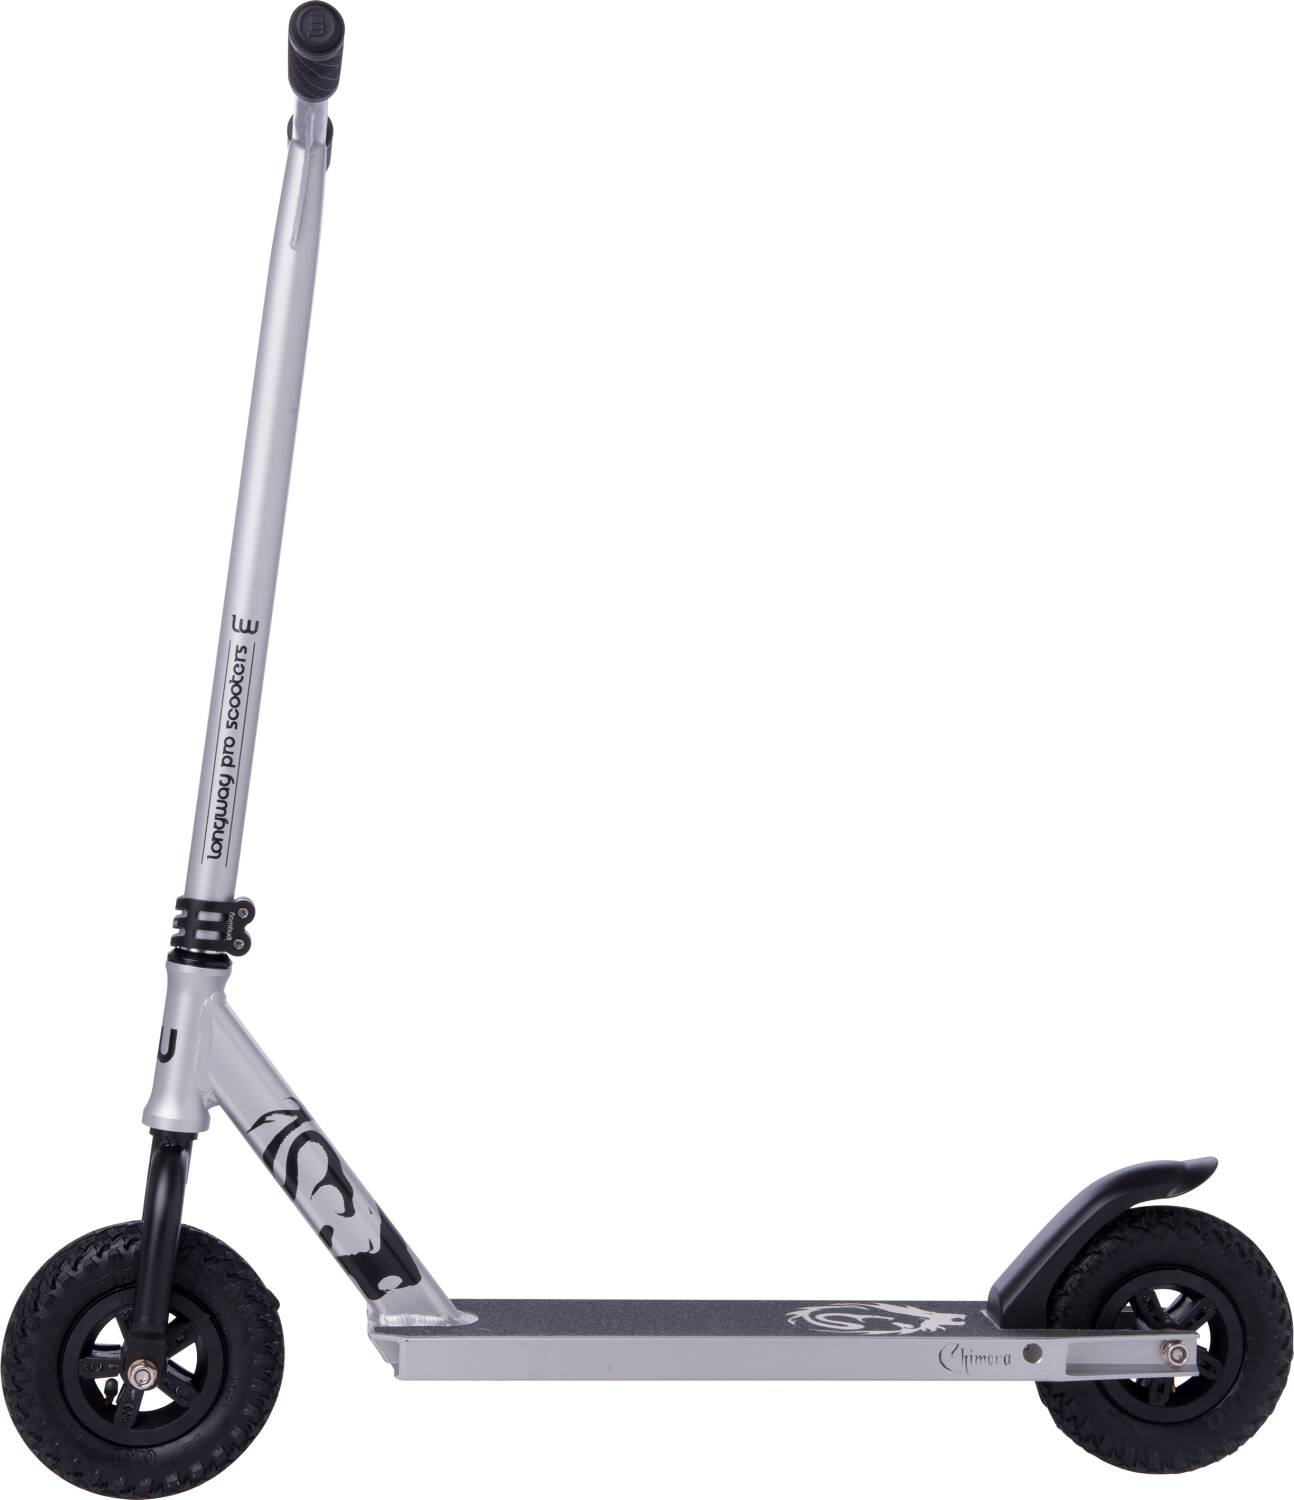 Longway Chimera Dirt scooter